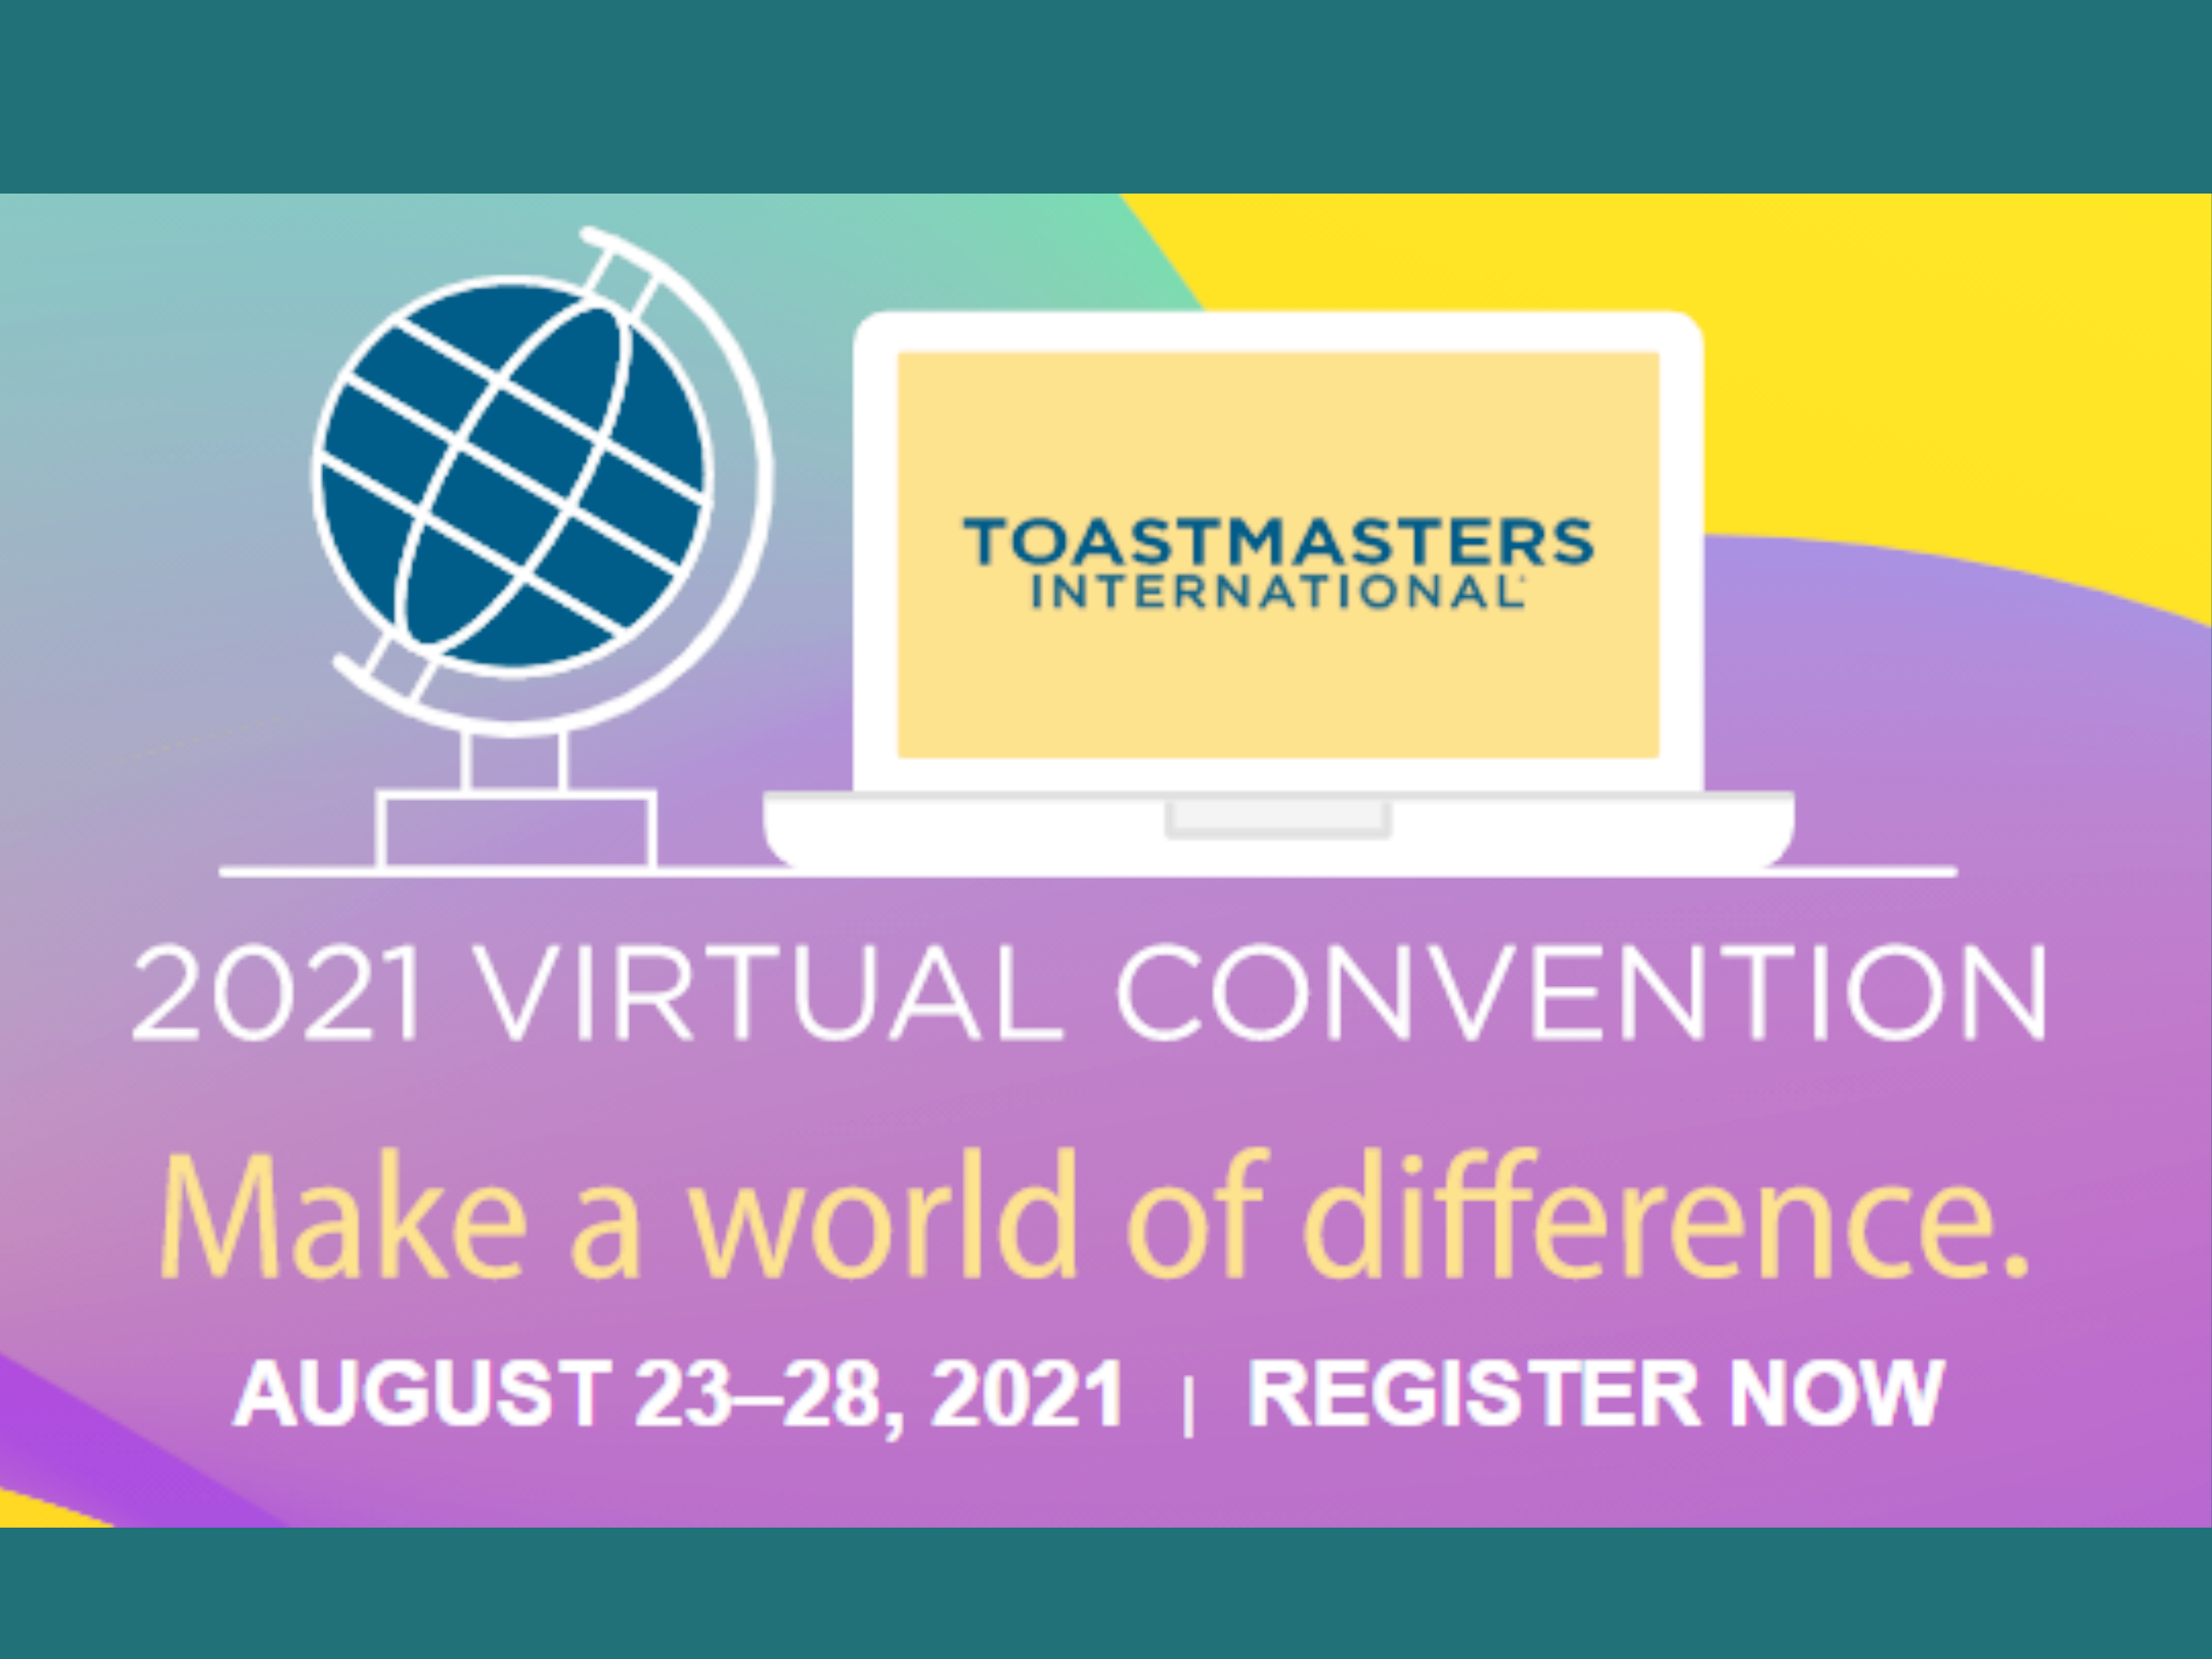 https://www.toastmasters.org/events/2021-international-convention